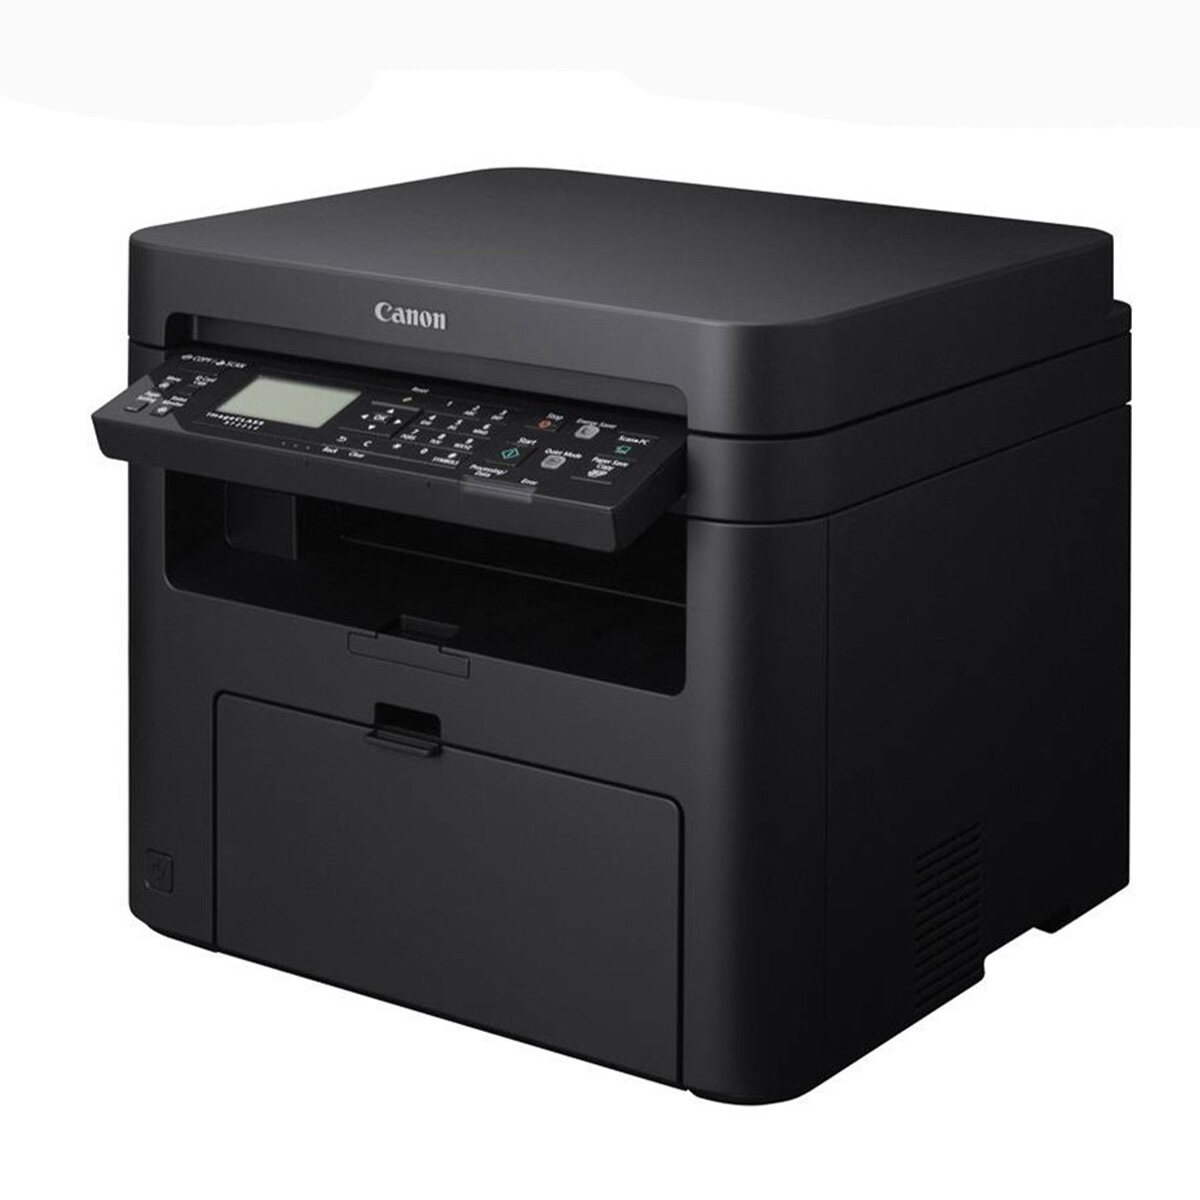 Canon imageCLASS MF241d Compact All-in-One Mono Printer (Print, Copy, Scan) with duplex,  Print, Scan, Copy